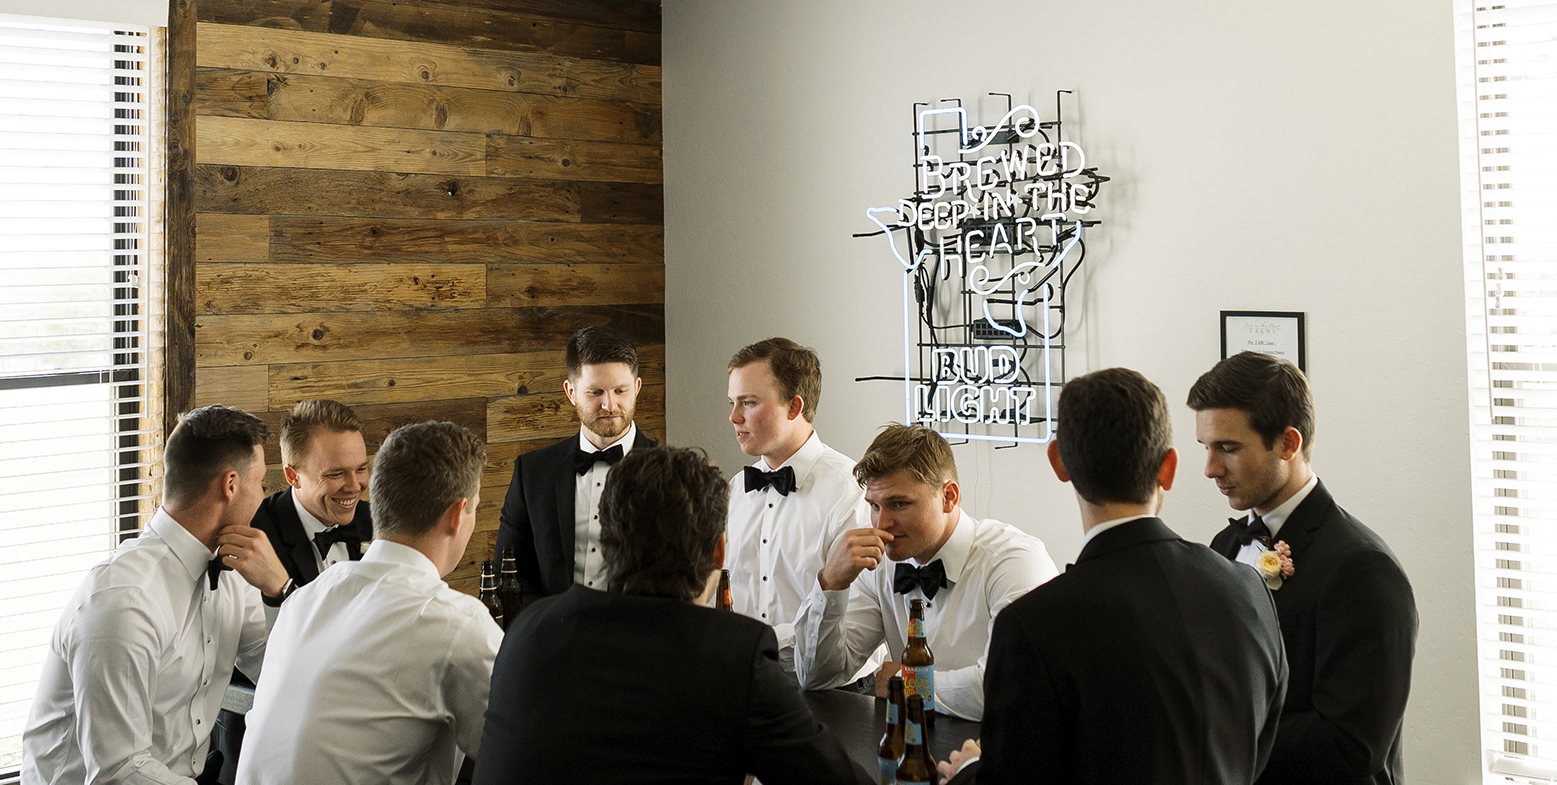 The groomsmen and the groom are drinking beers in the groom's suite.